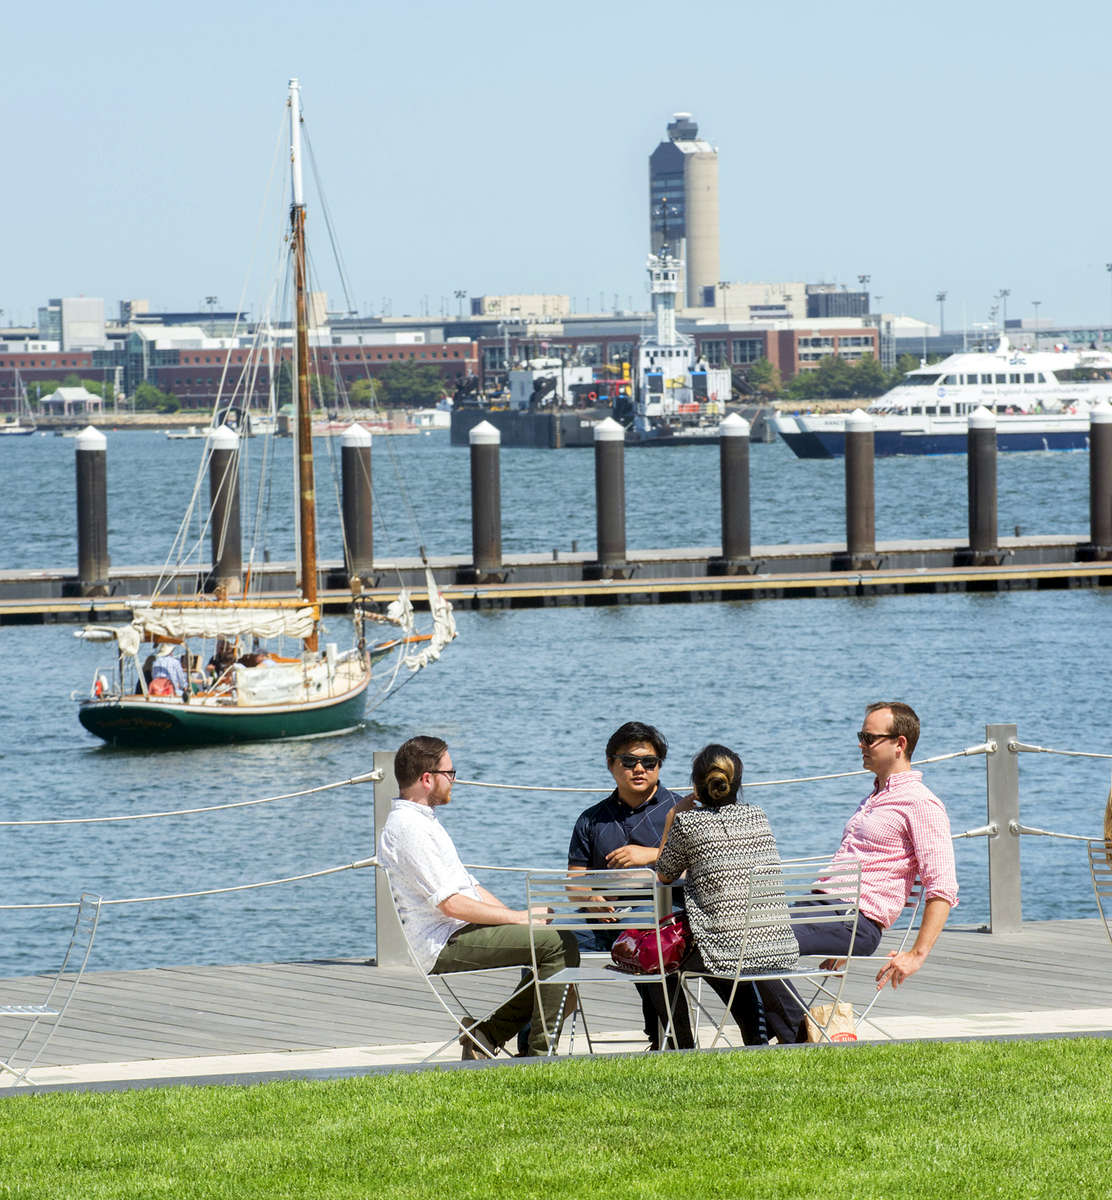 A lifestyle photograph of people talking at a table in a park in the Seaport district, Boston, MA on a sunny day with boats in the background.